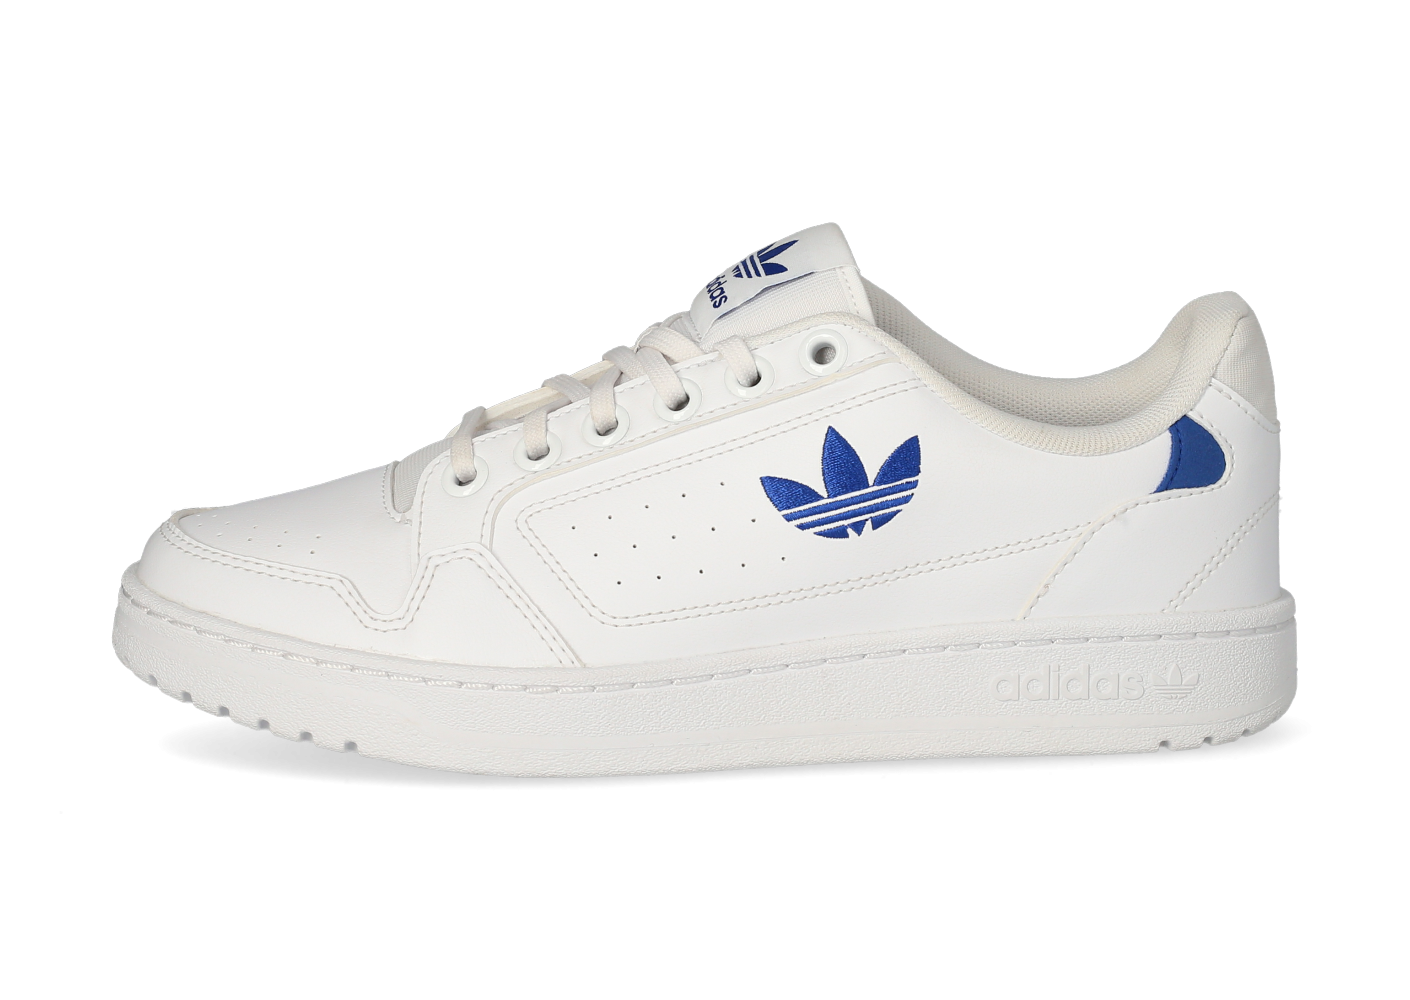 adidas NY 90 blanche et bleue - Chaussures Baskets homme - Pochta